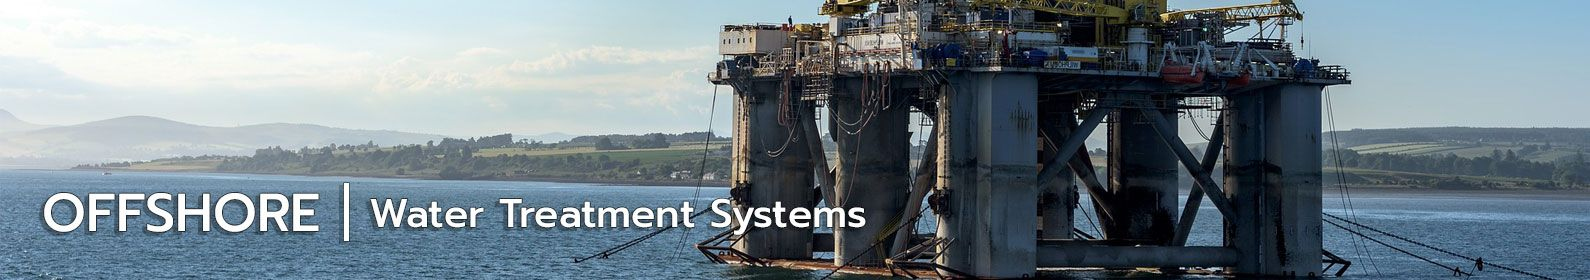 water treatment systems for offshore industry